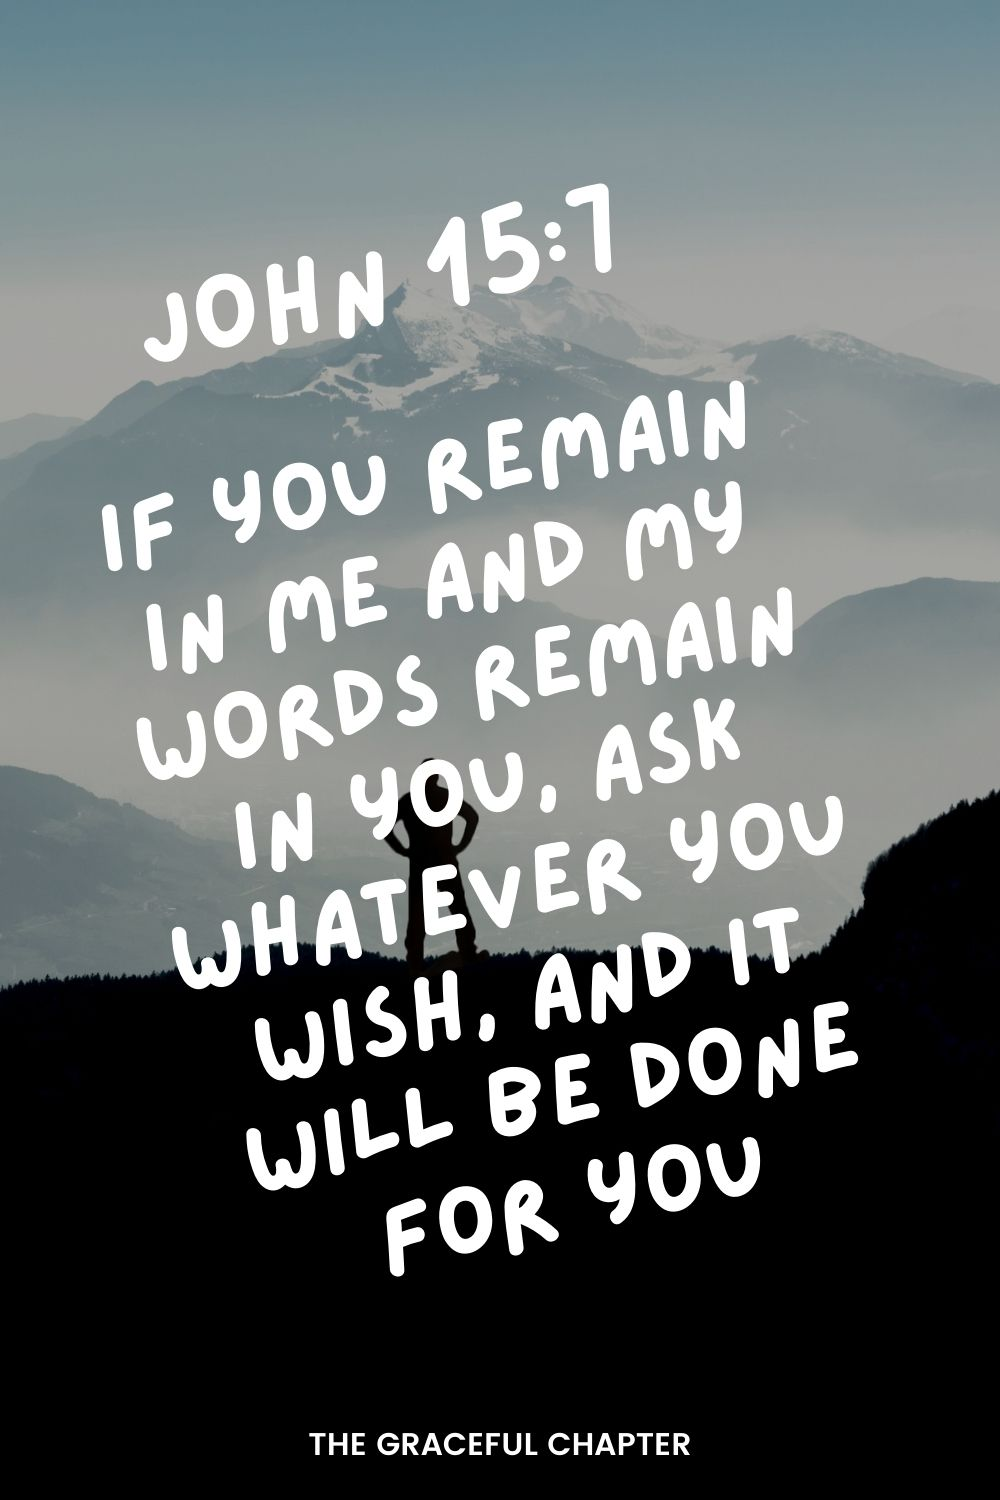 If you remain in me and my words remain in you, ask whatever you wish, and it will be done for you. John 15:7